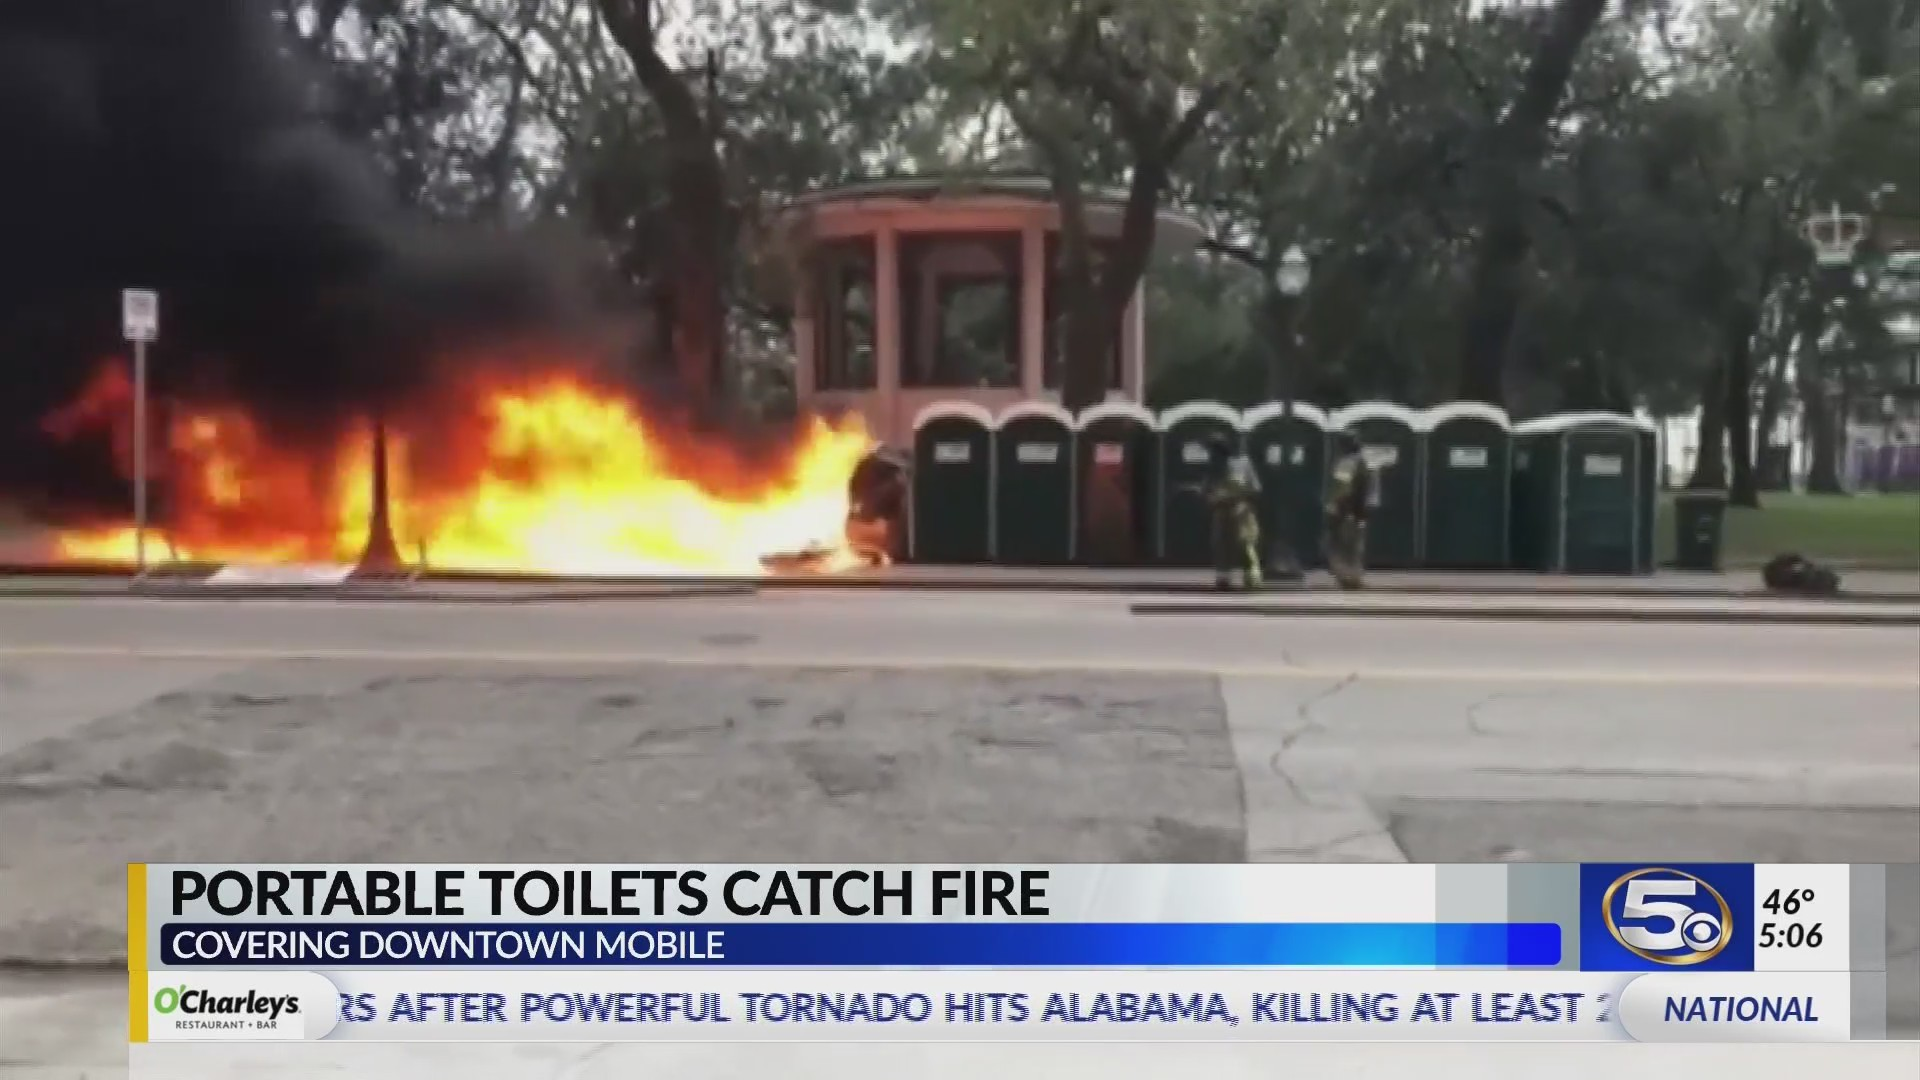 VIDEO: Six portable toilets catch fire in Bienville Square